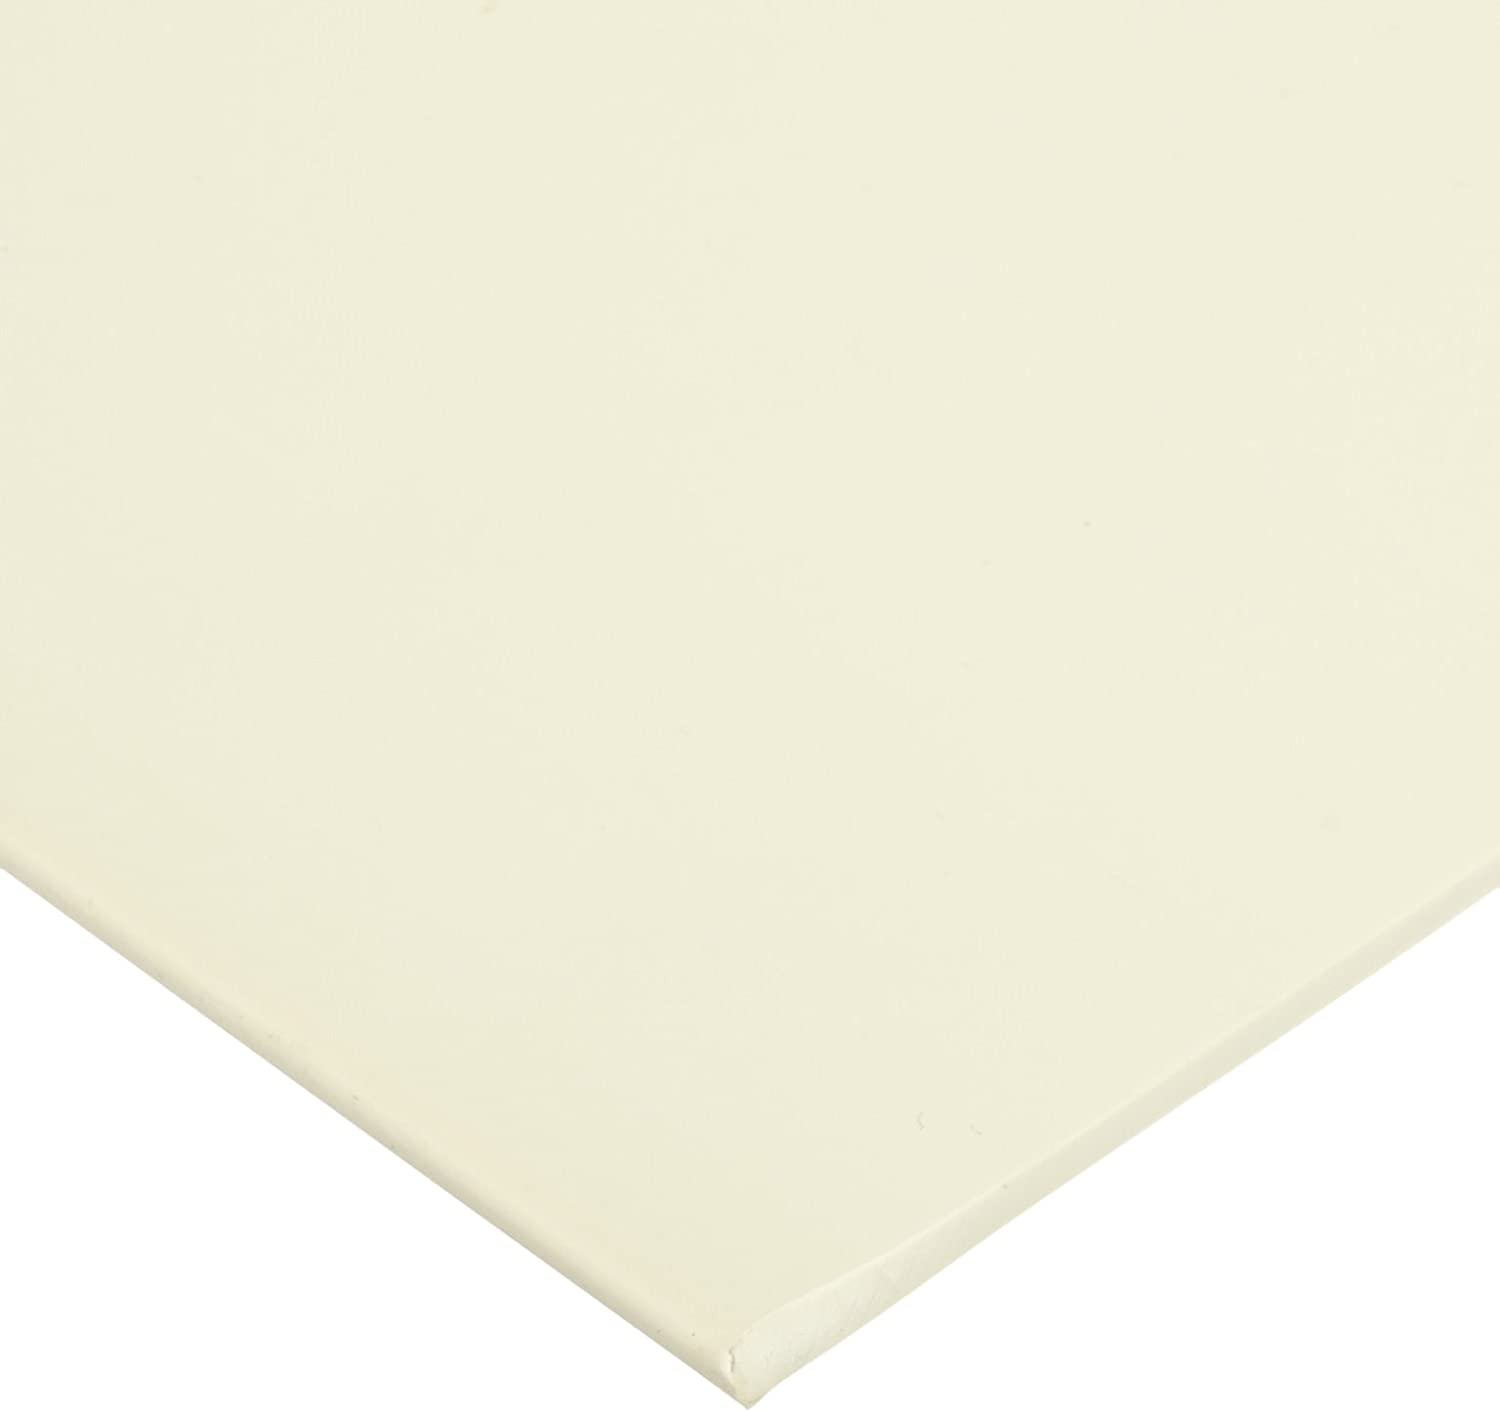 Sax Easy to Cut Unmounted Linoleum  9 x 12 inches  Pack of 6